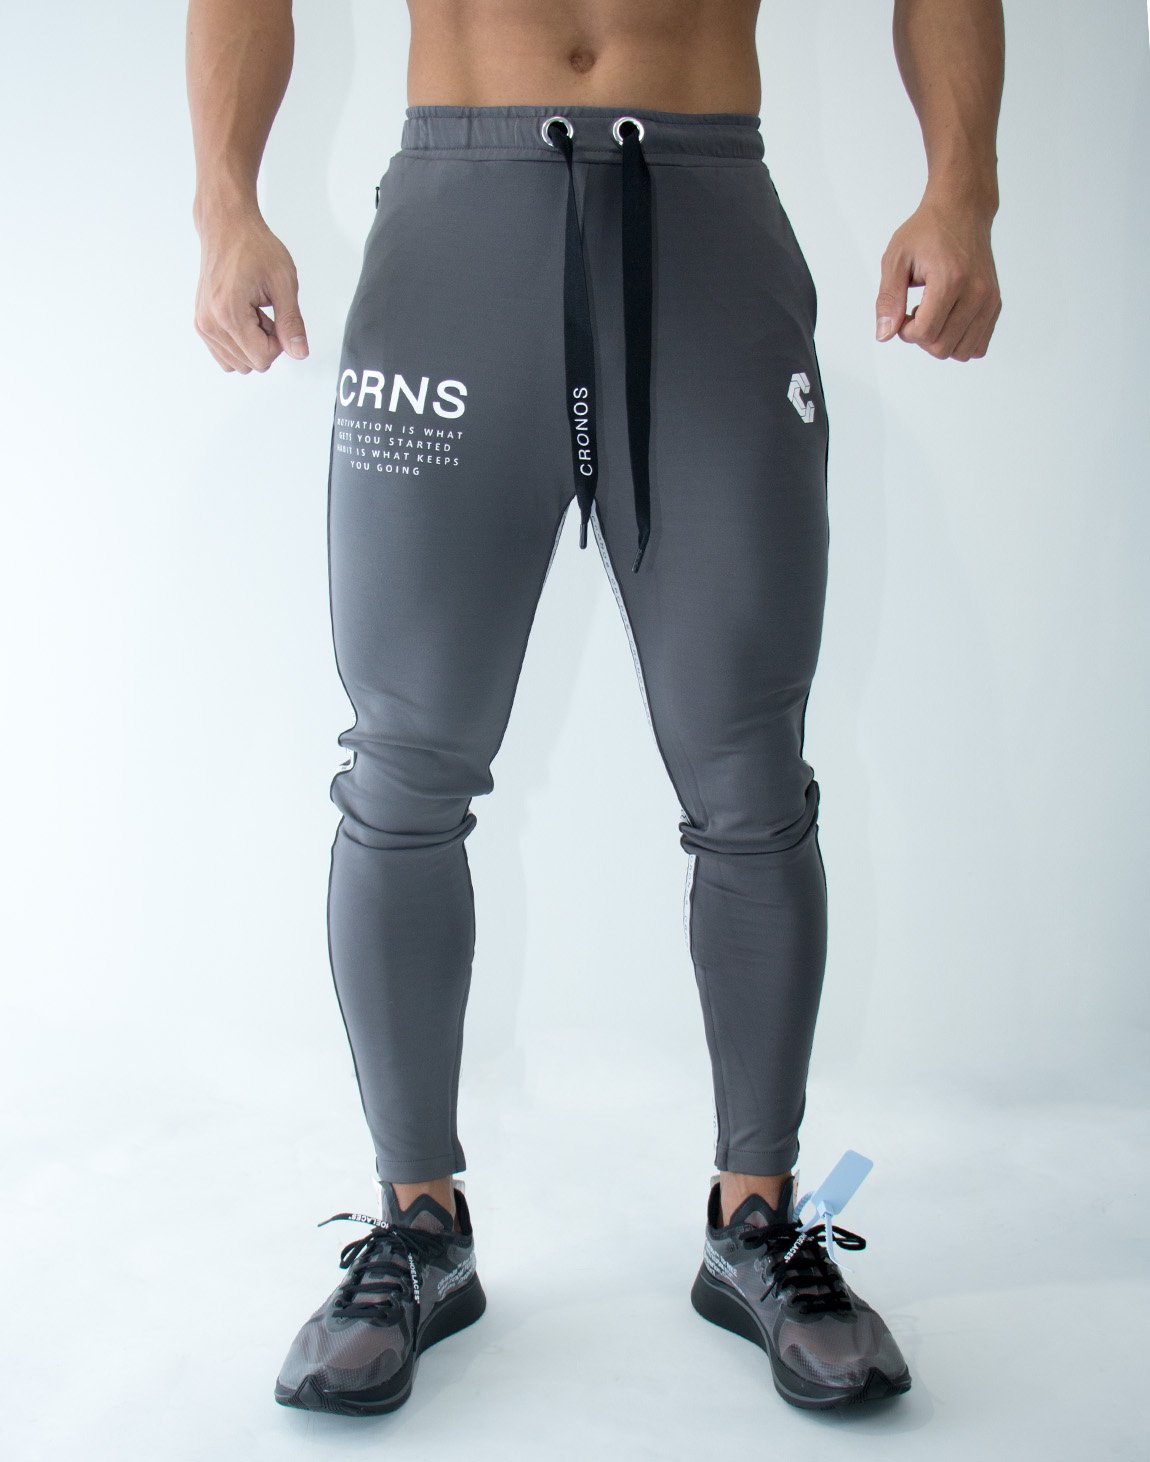 <img class='new_mark_img1' src='https://img.shop-pro.jp/img/new/icons1.gif' style='border:none;display:inline;margin:0px;padding:0px;width:auto;' />CRNS Logo Stripe Long Pants 09 GRAY